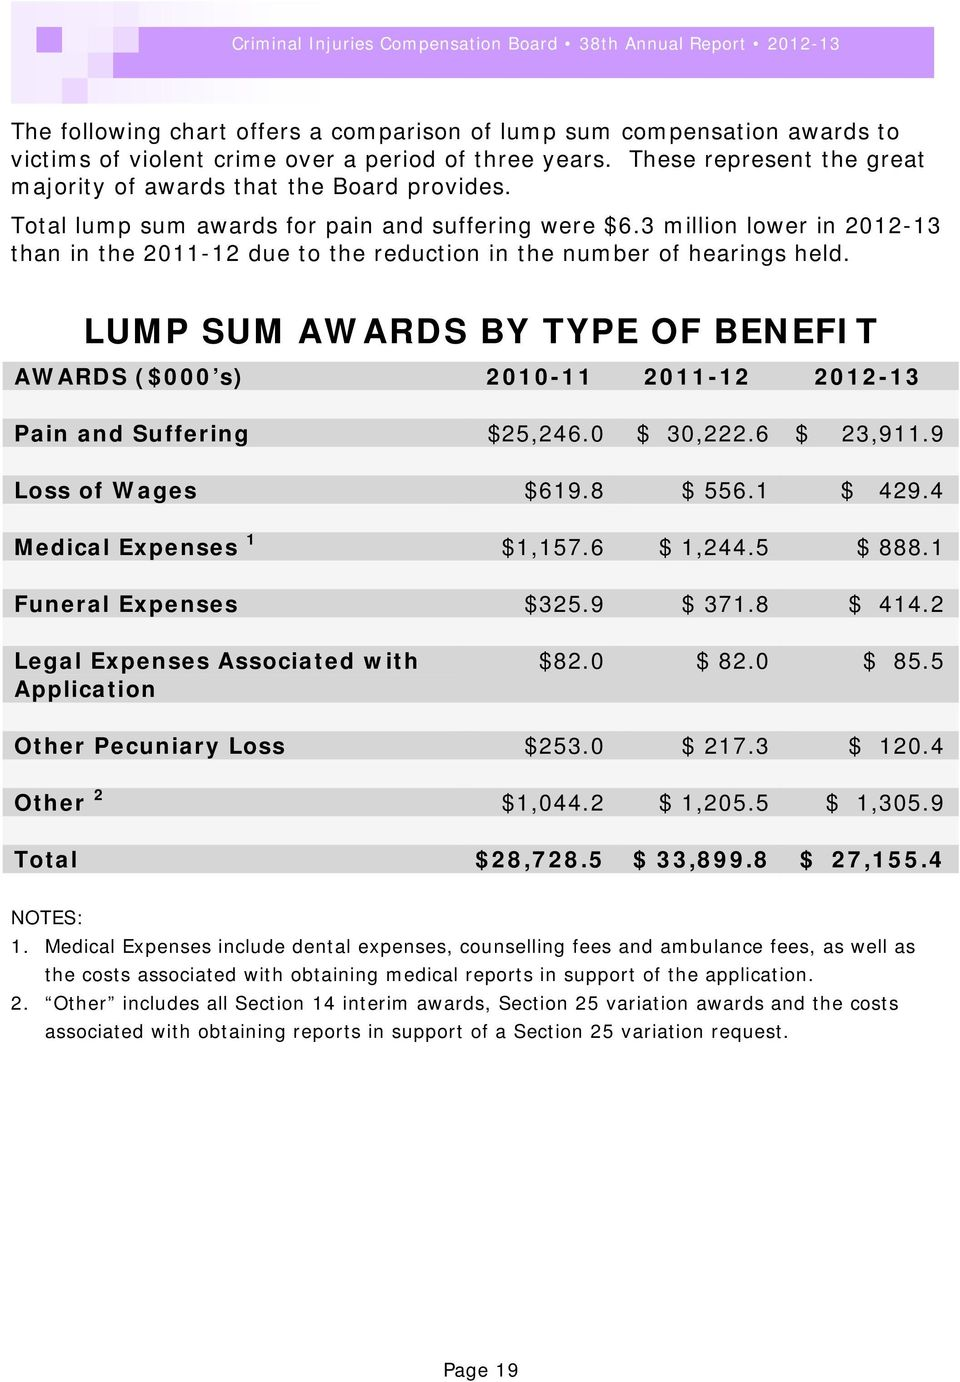 LUMP SUM AWARDS BY TYPE OF BENEFIT AWARDS ($000 s) 2010-11 2011-12 2012-13 Pain and Suffering $25,246.0 $ 30,222.6 $ 23,911.9 Loss of Wages $619.8 $ 556.1 $ 429.4 Medical Expenses 1 $1,157.6 $ 1,244.